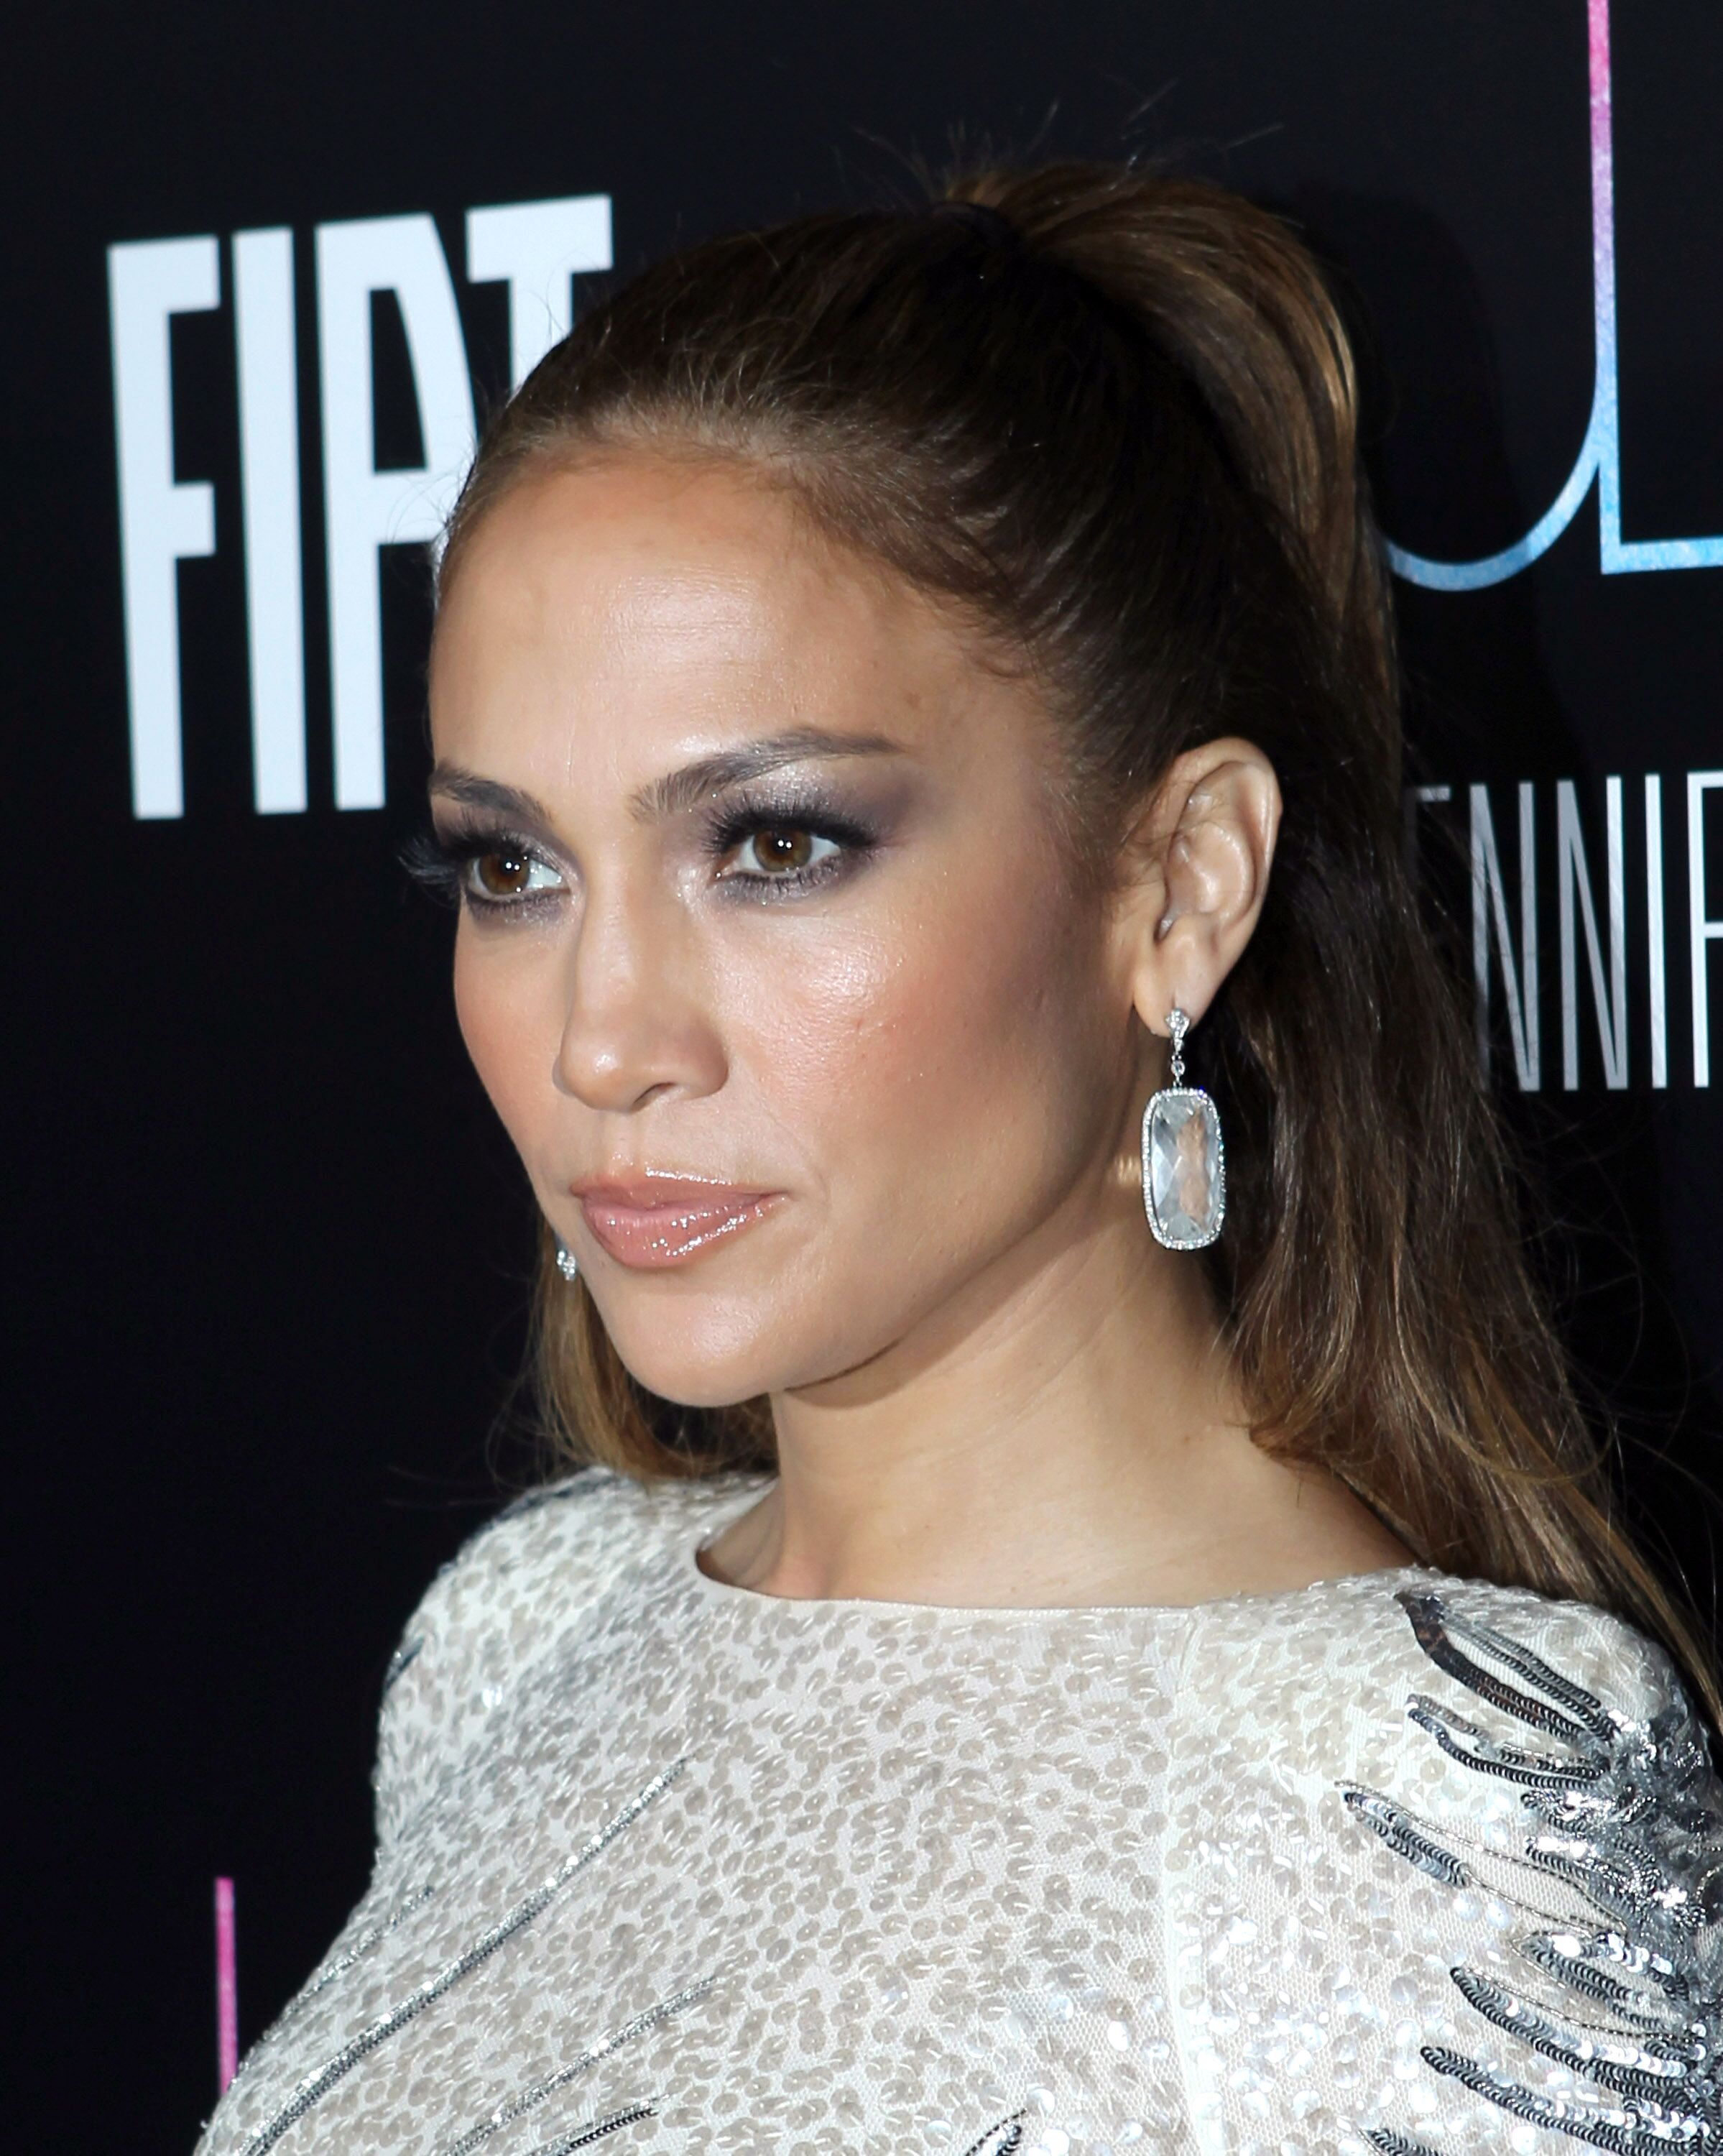 Jennifer Lopez at the Fiat Presents Jennifer Lopez's Official American Music Awards After Party on November 20, 2011, in West Hollywood, California | Photo: Chris Weeks/Getty Images